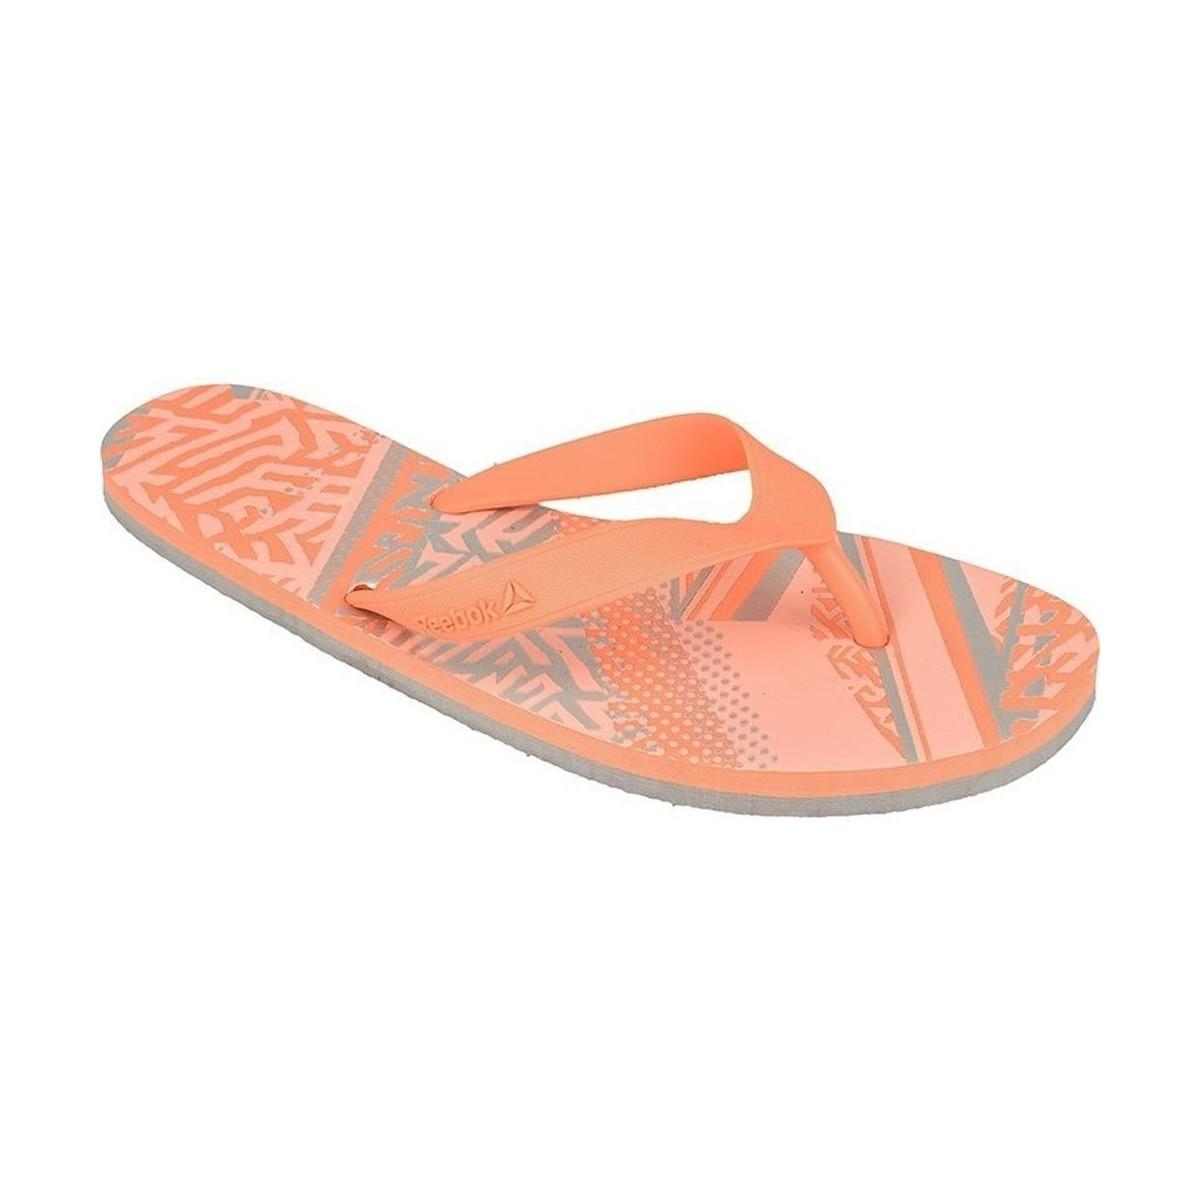 1020657e7be7fc Reebok Cash Flip W Women s Flip Flops   Sandals (shoes) In Pink in ...